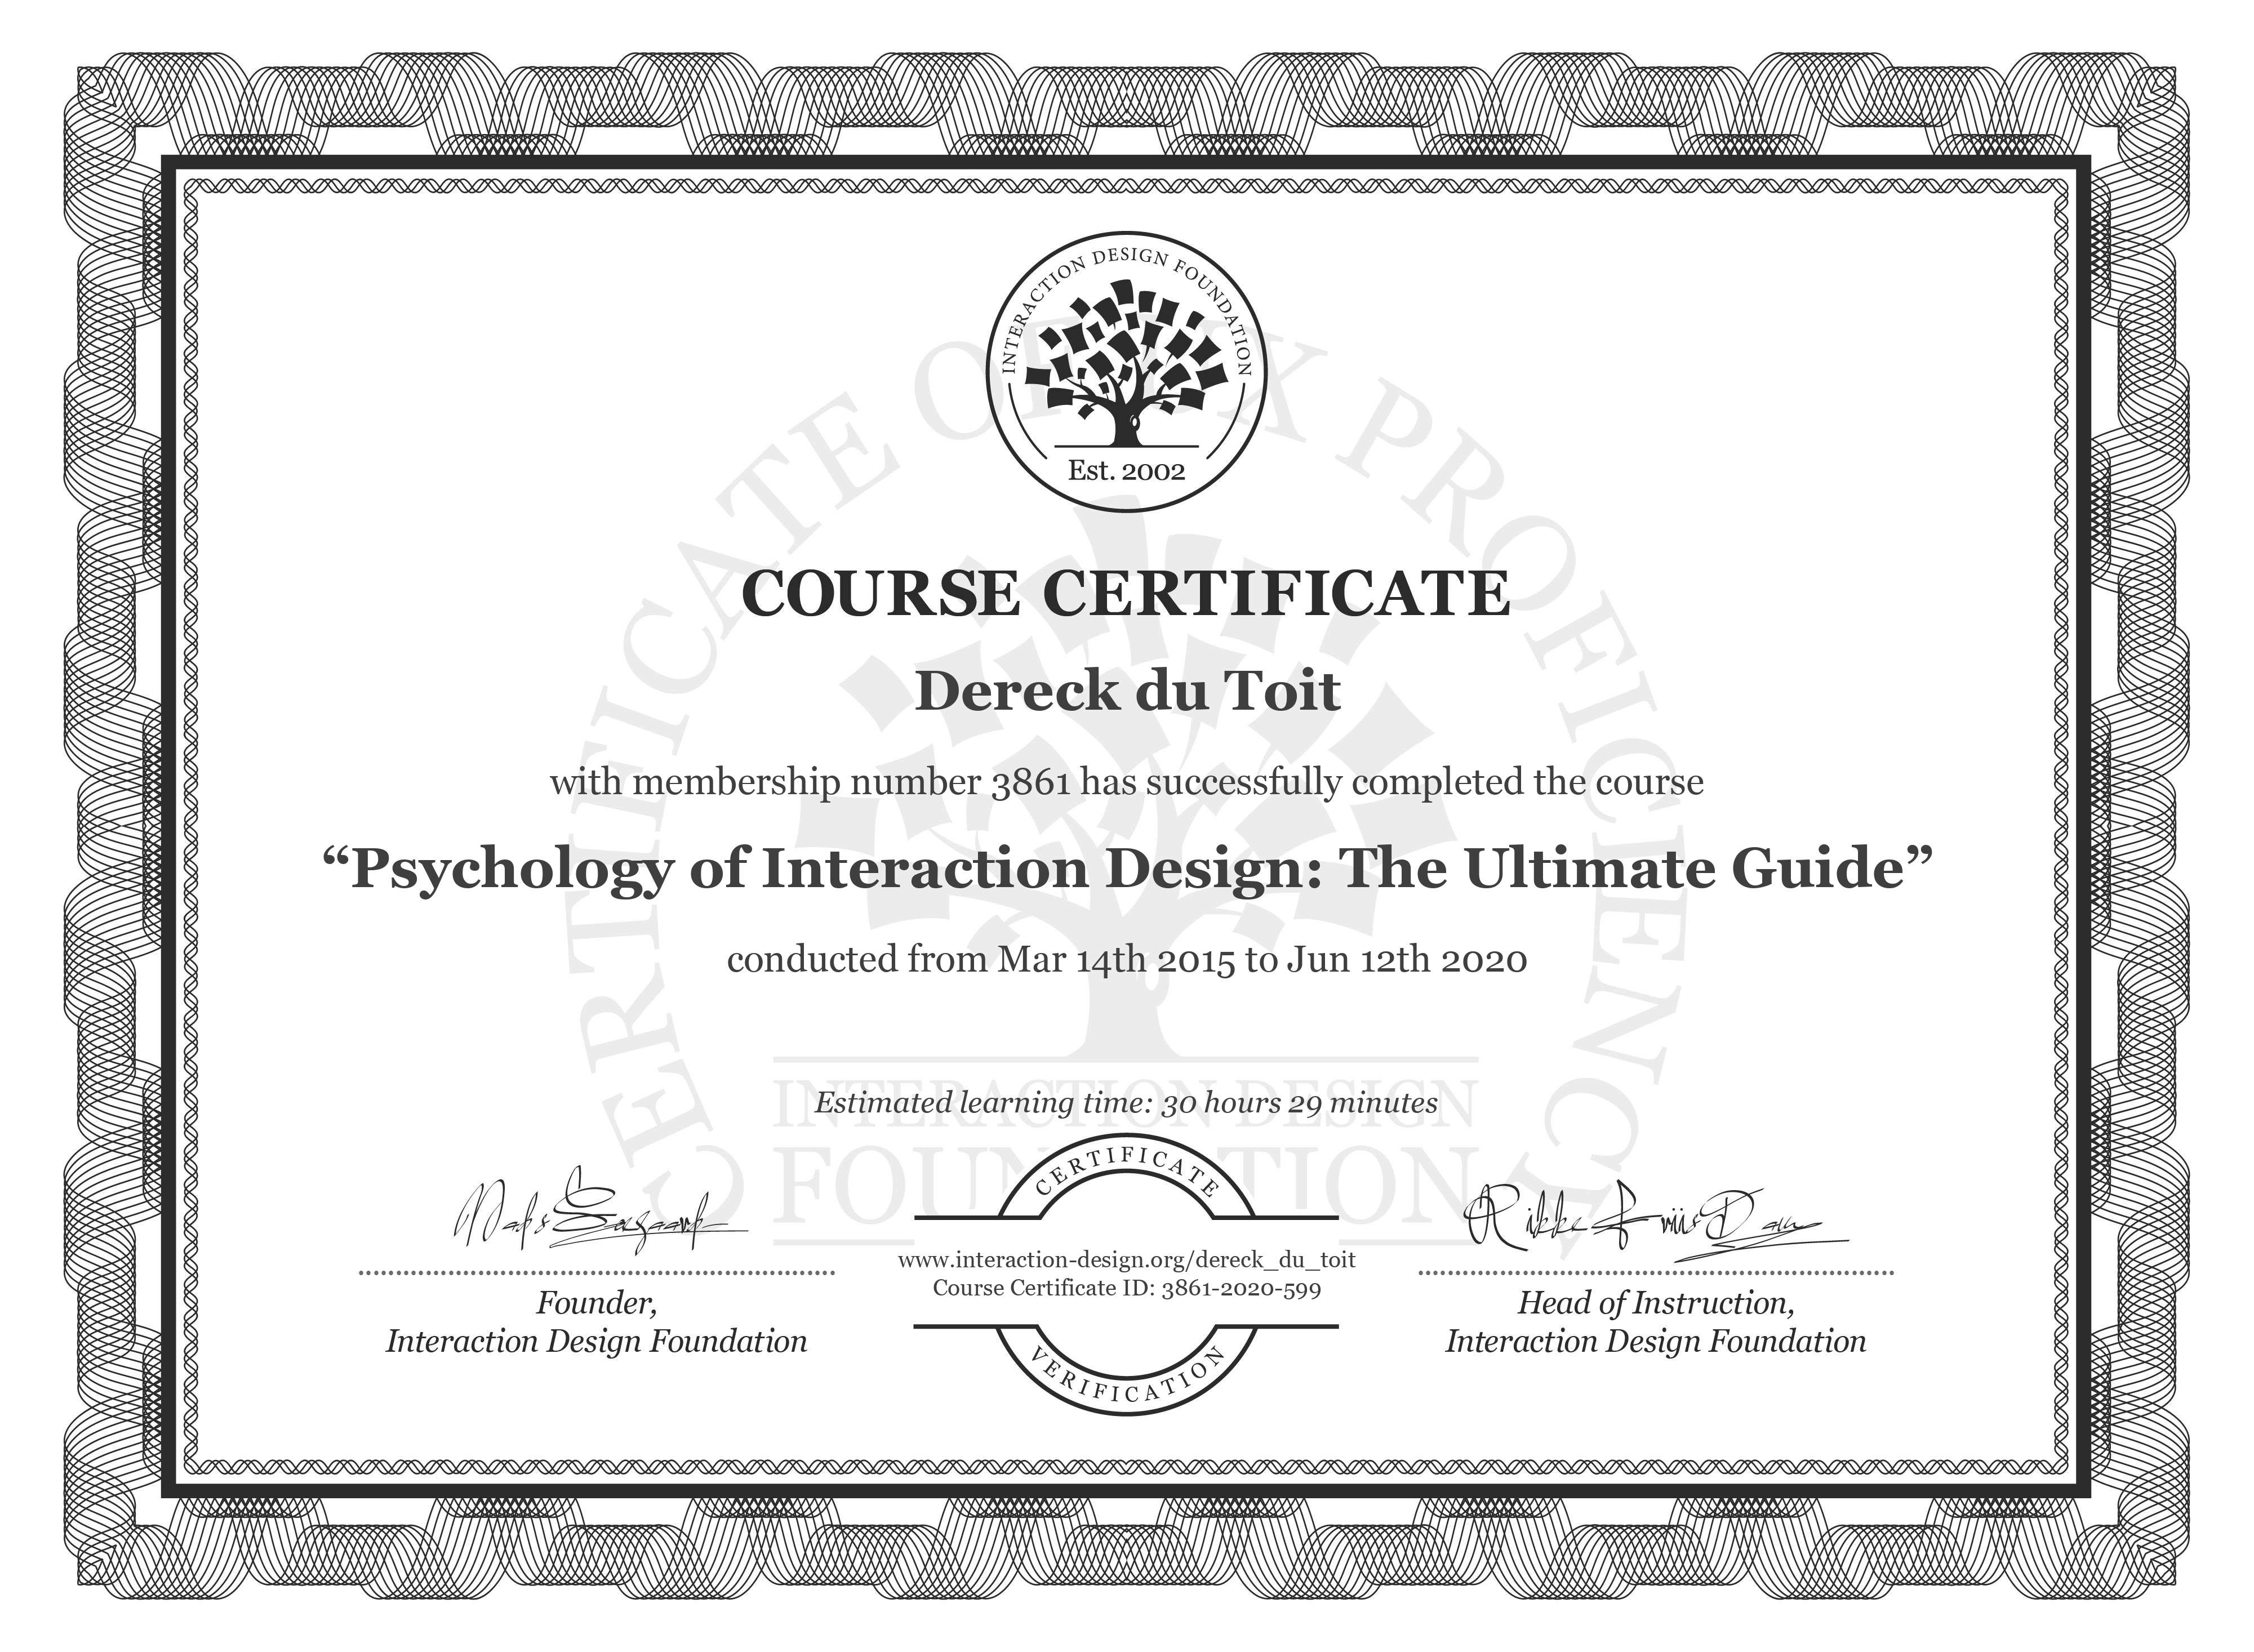 Dereck du Toit's Course Certificate: Psychology of Interaction Design: The Ultimate Guide